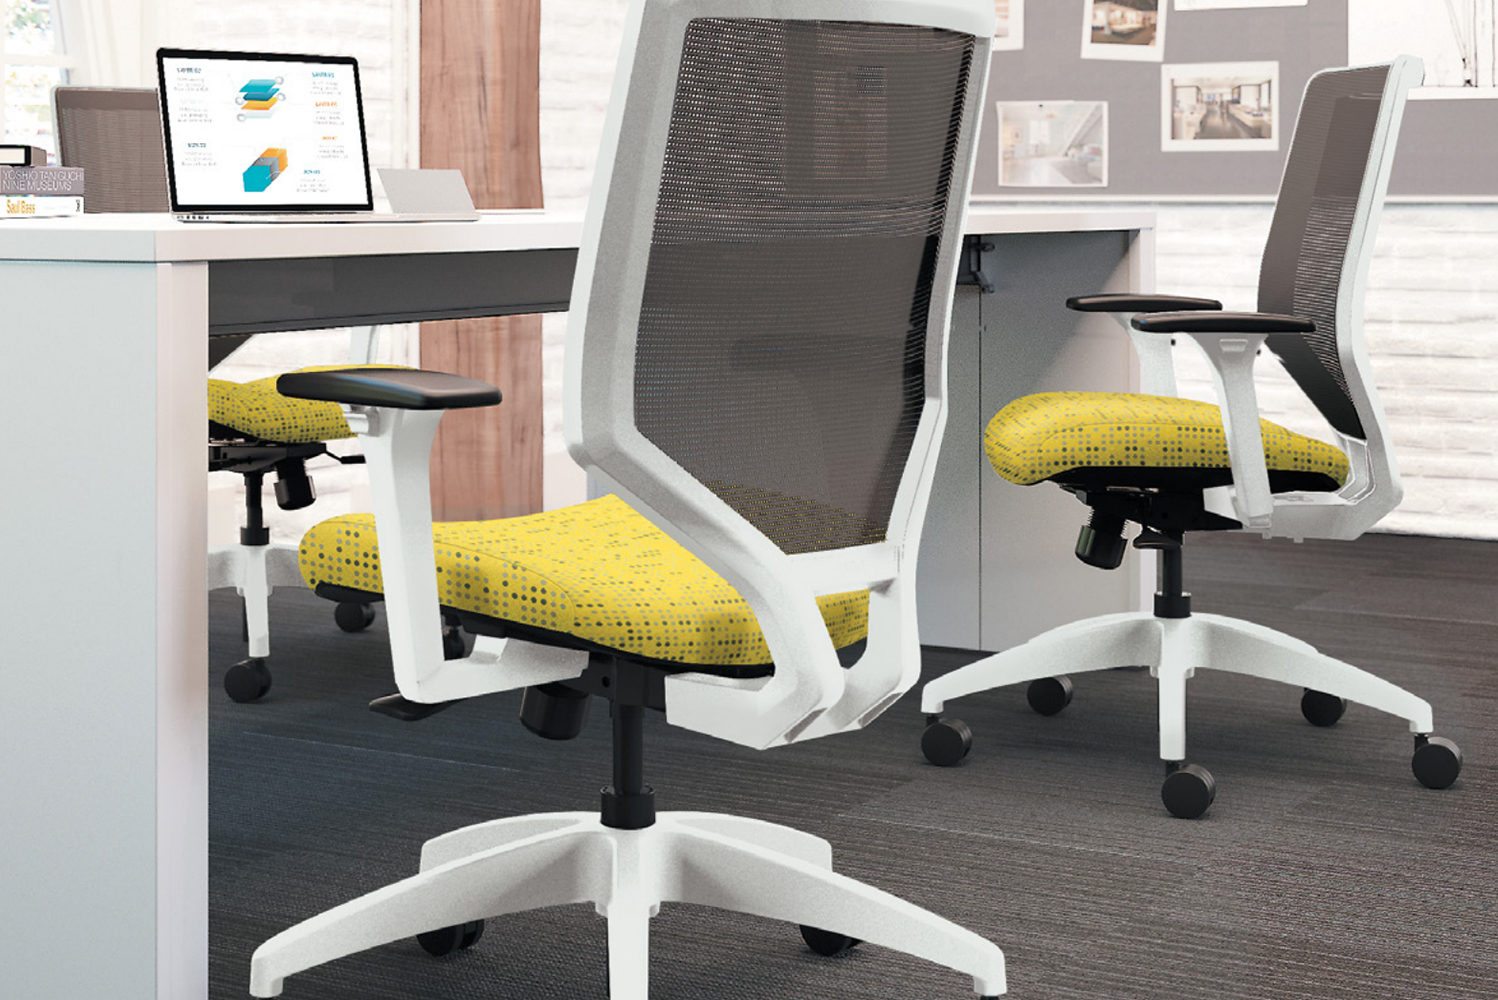 The chair has arm adjustability and tilt control options, and the seat is available in different fabrics.